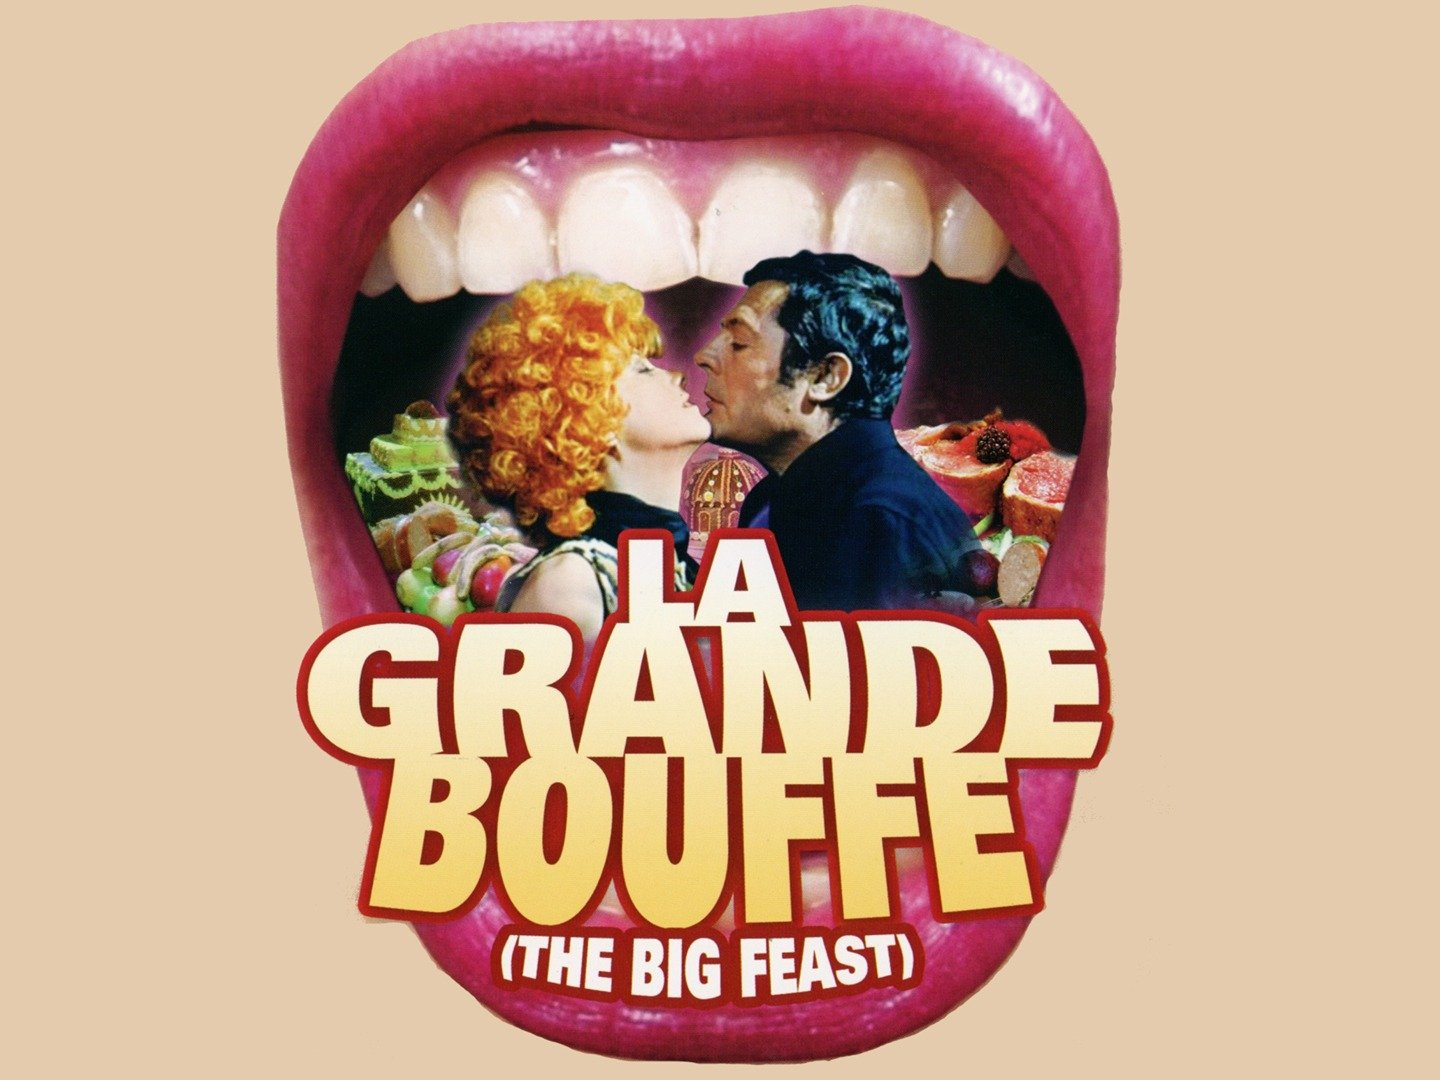 The Big Feast (La Grande Bouffe)